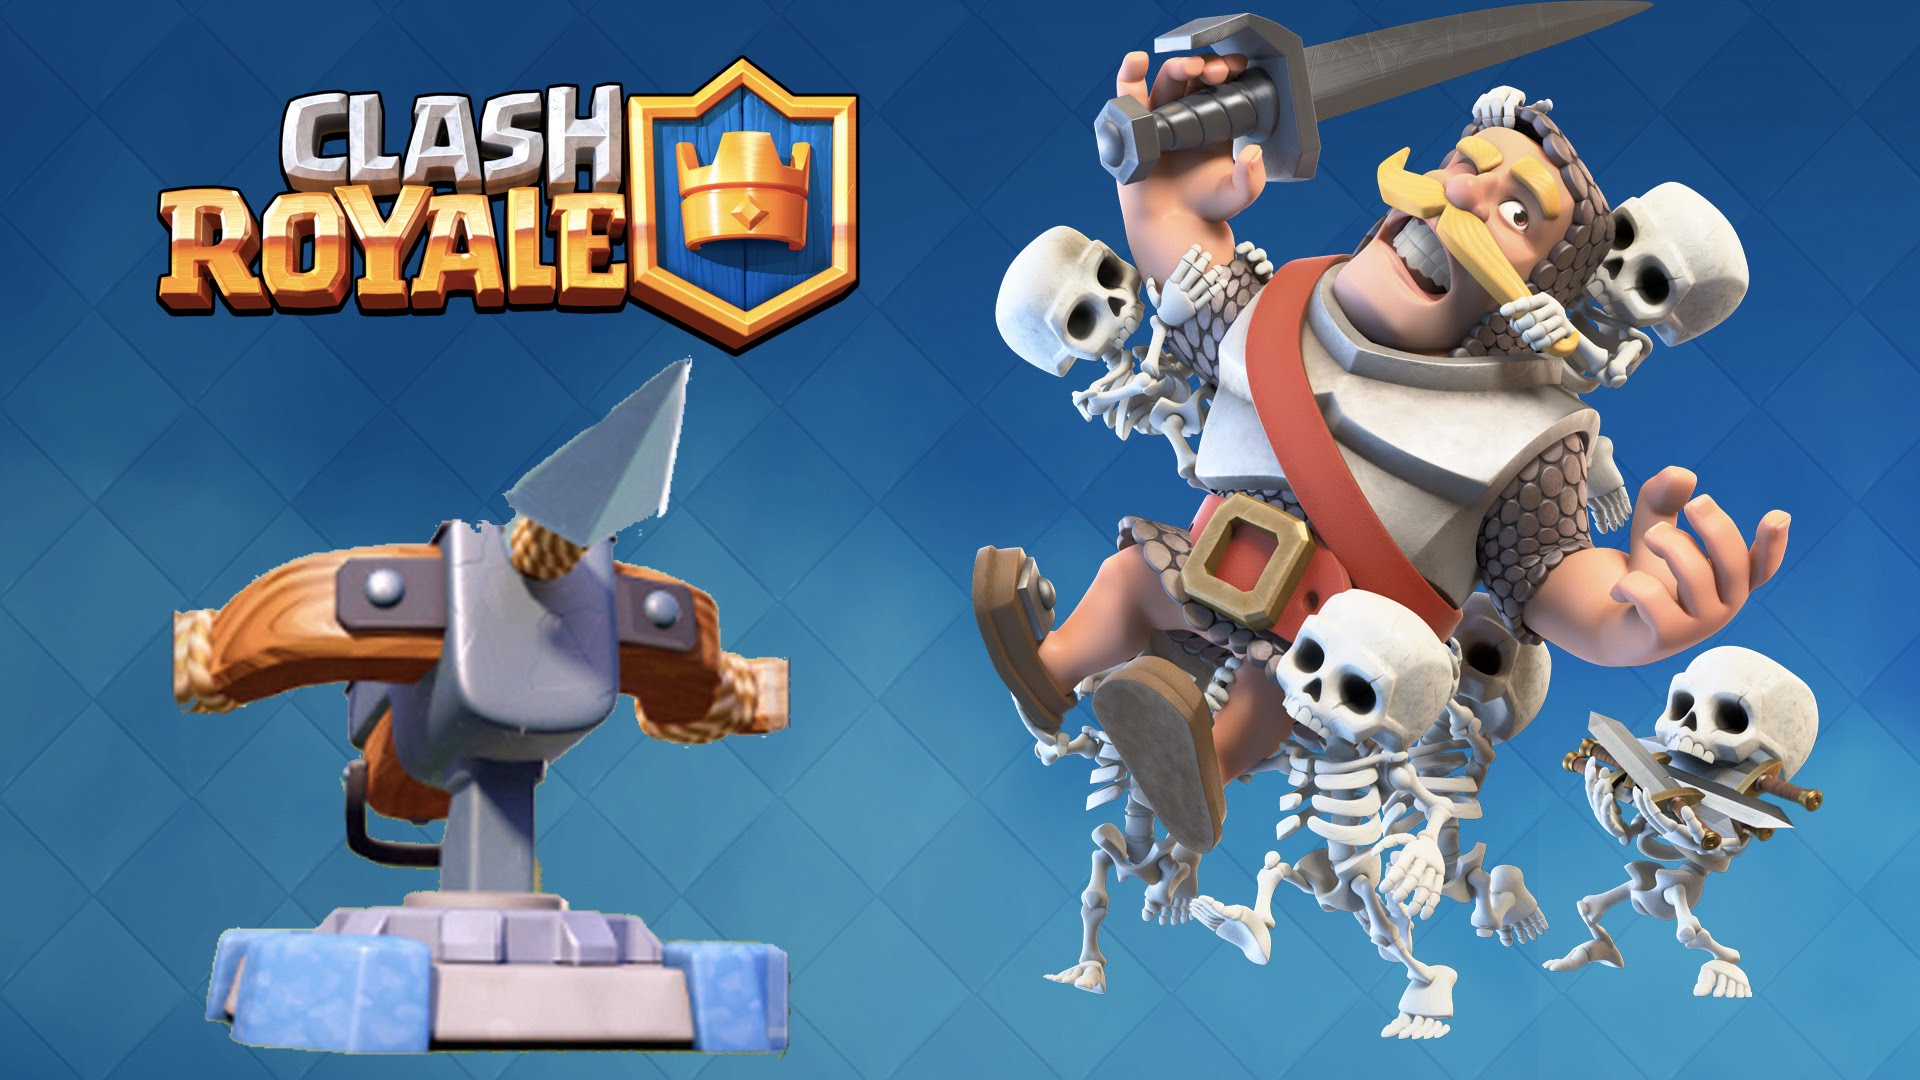 Clash royale hd wallpaper background image 1920x1080 id 855976 wallpaper abyss - Clash royale 2560x1440 ...